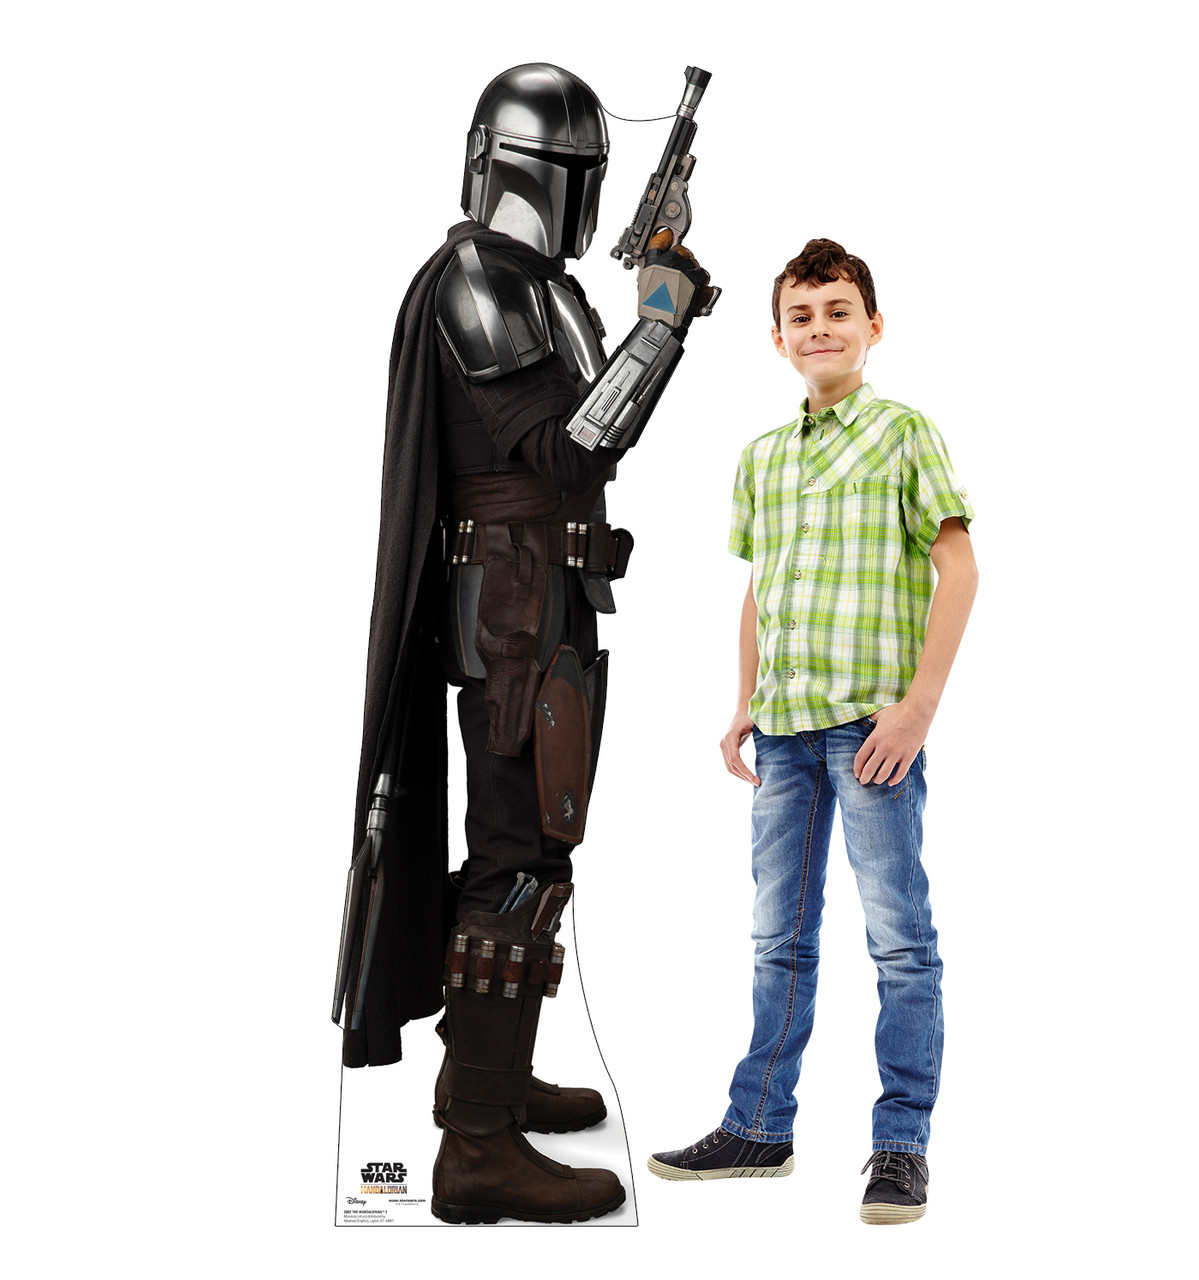 Life-size cardboard standee of The Mandalorian fromThe Mandalorian with Model.